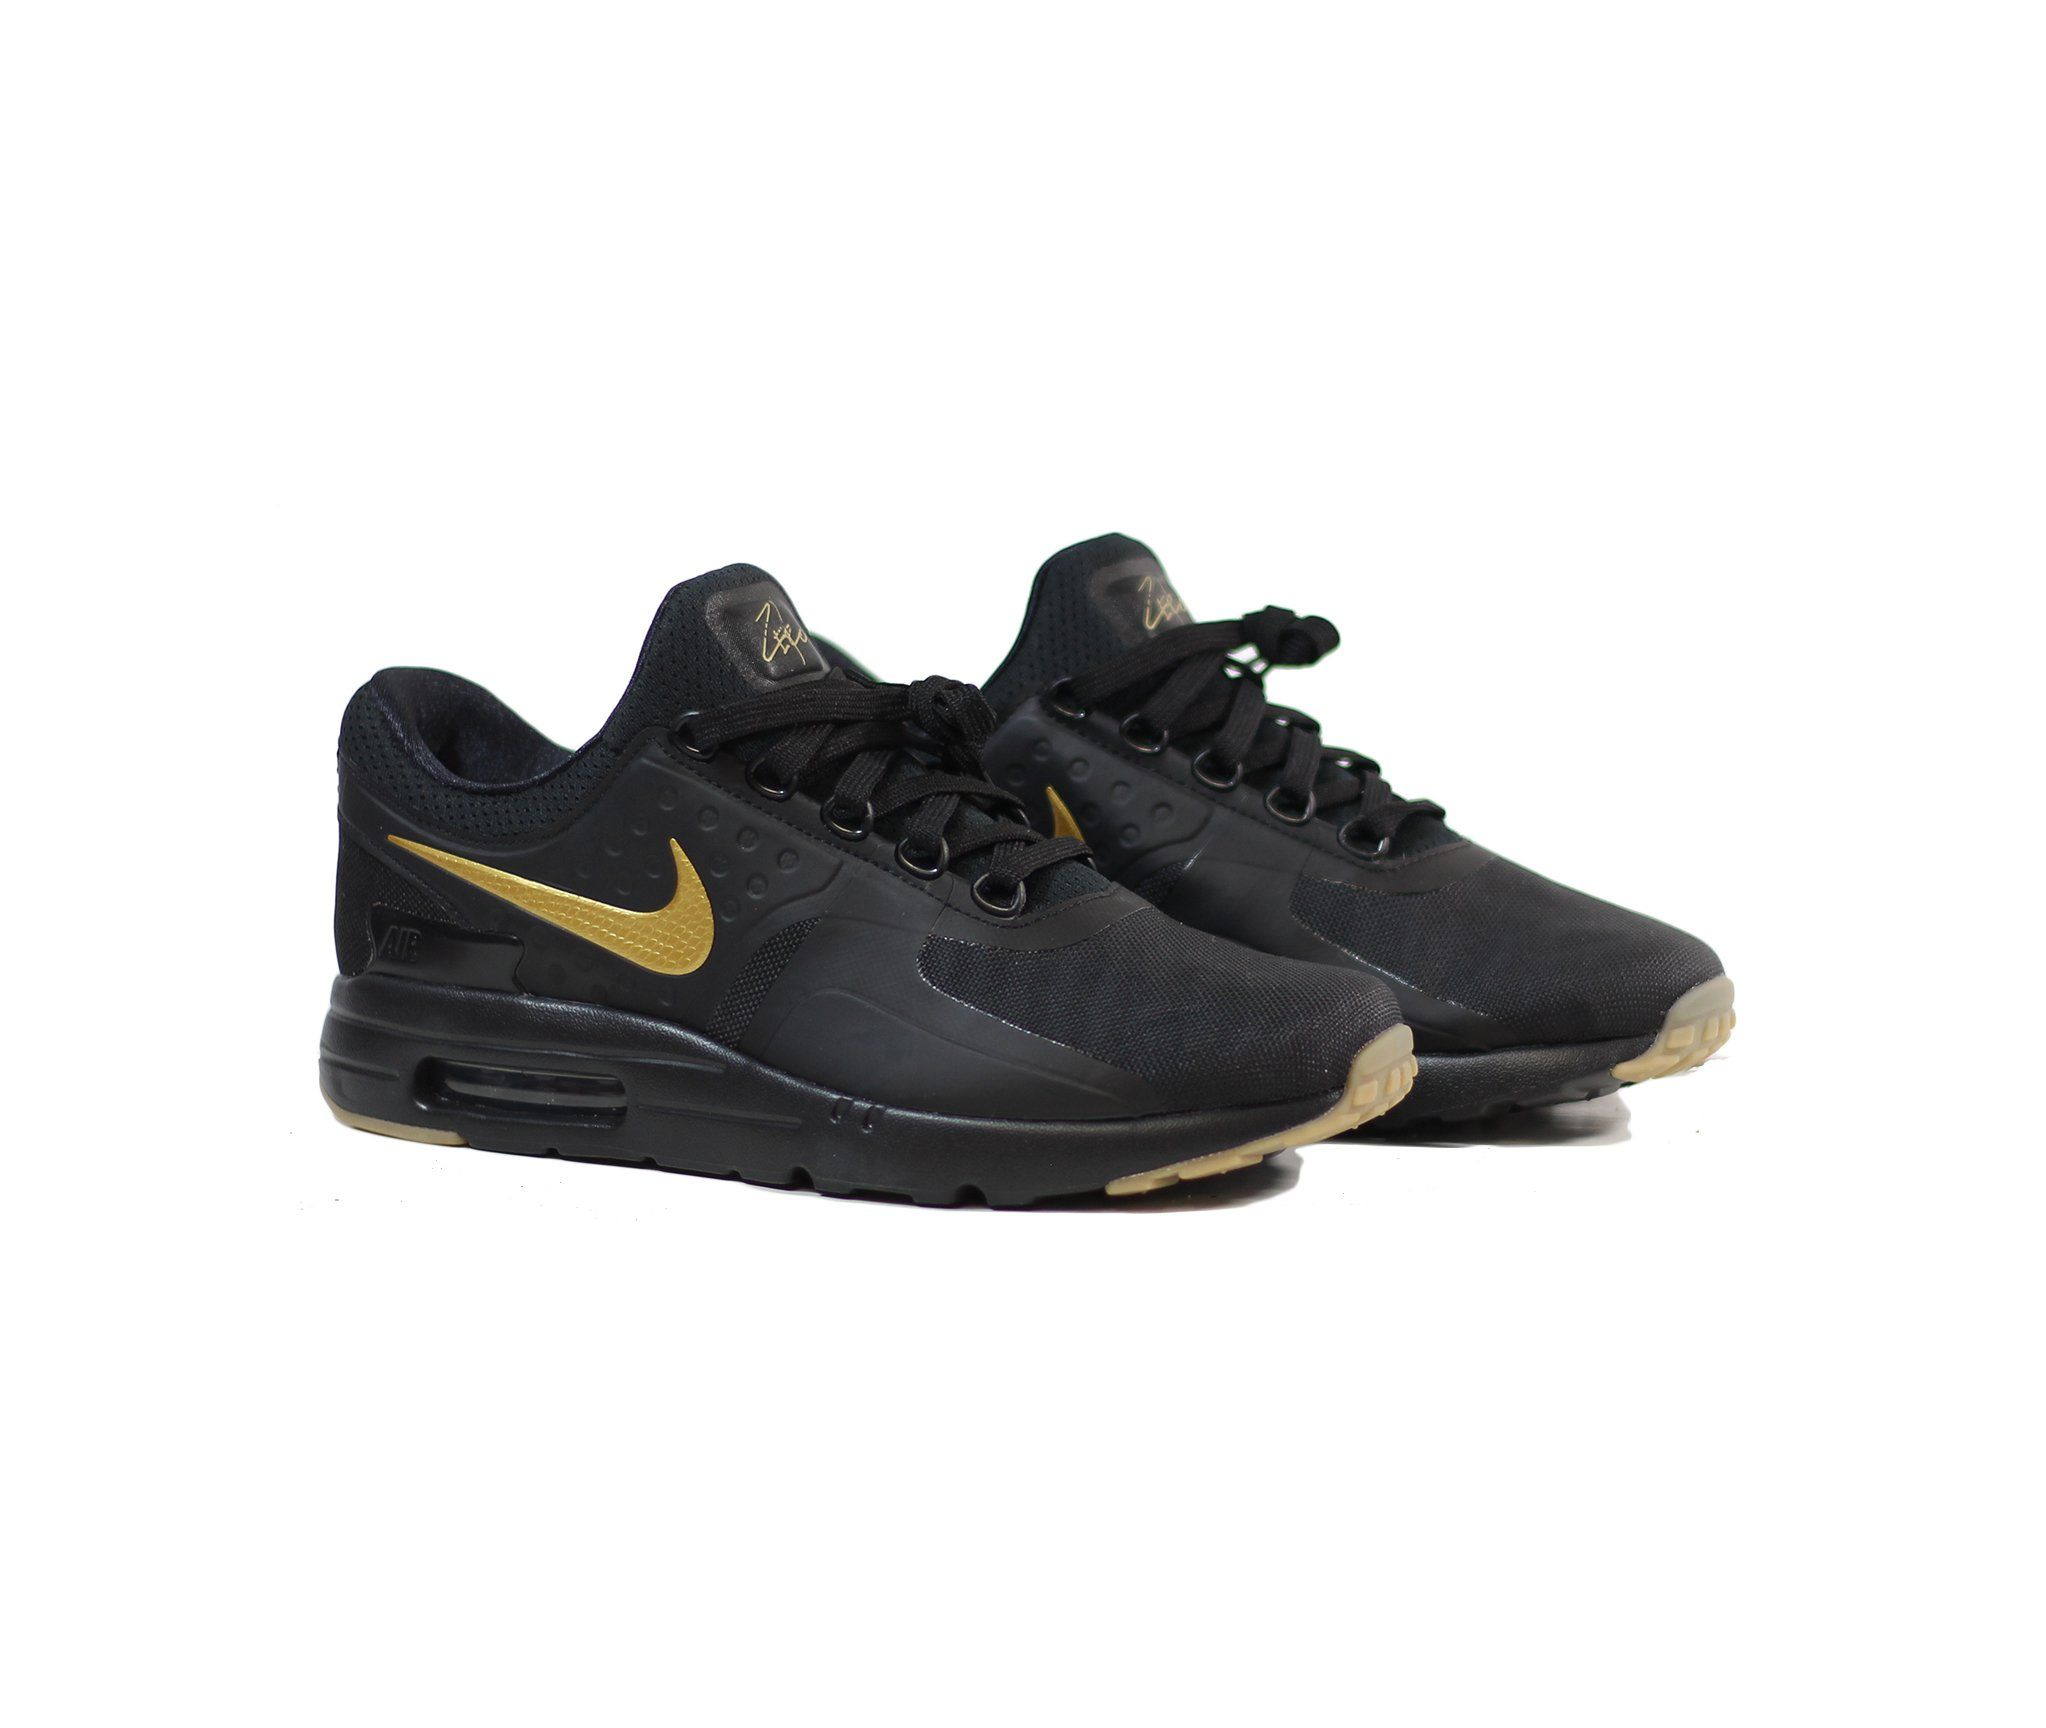 cbb6cbe689b19 NIKE Air Max Zero Essential - Black/Metallic Gold | Products | Nike ...